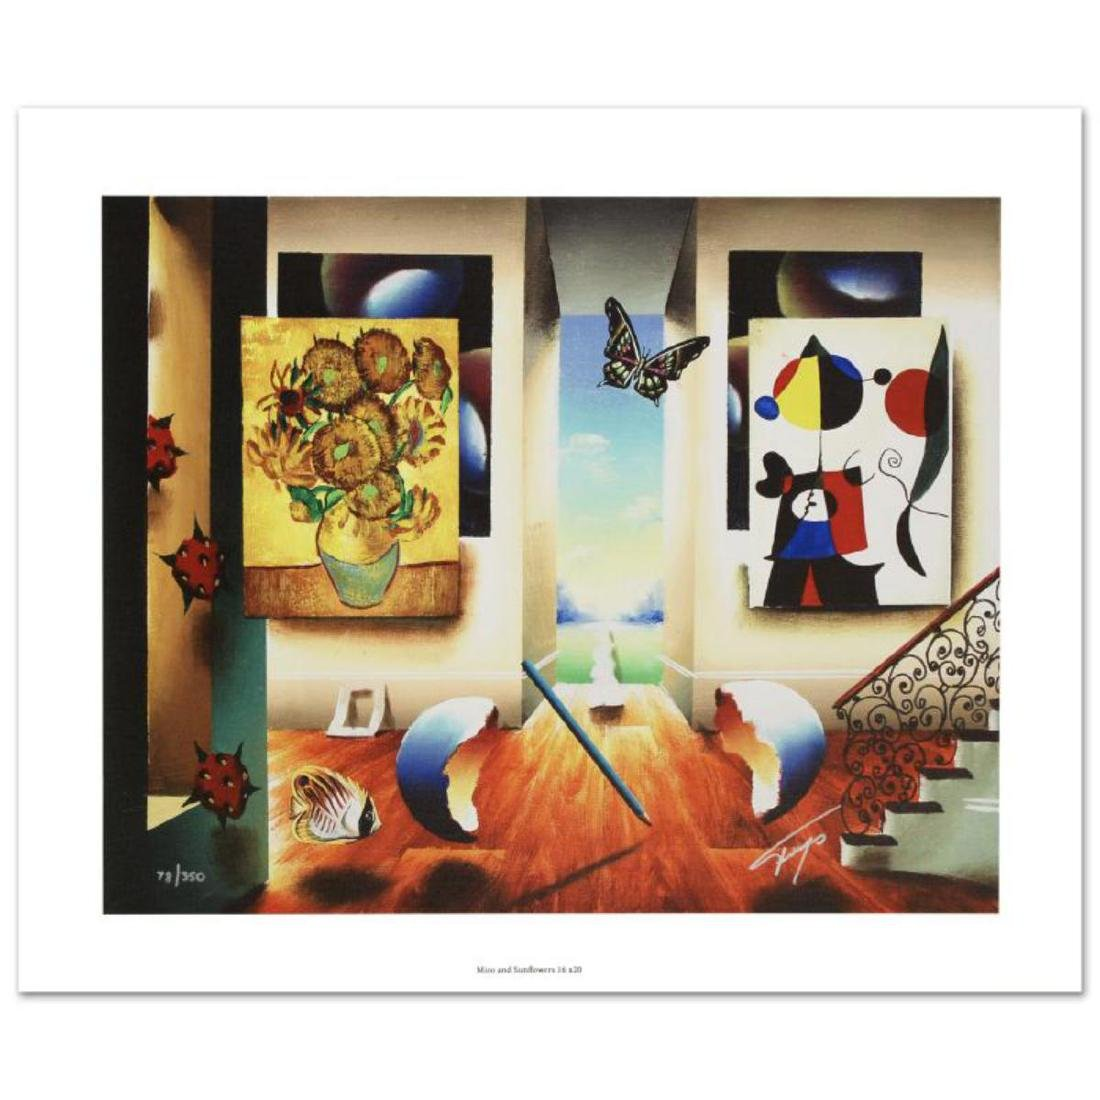 """Miro and Sunflowers"" Limited Edition Giclee on Canvas"